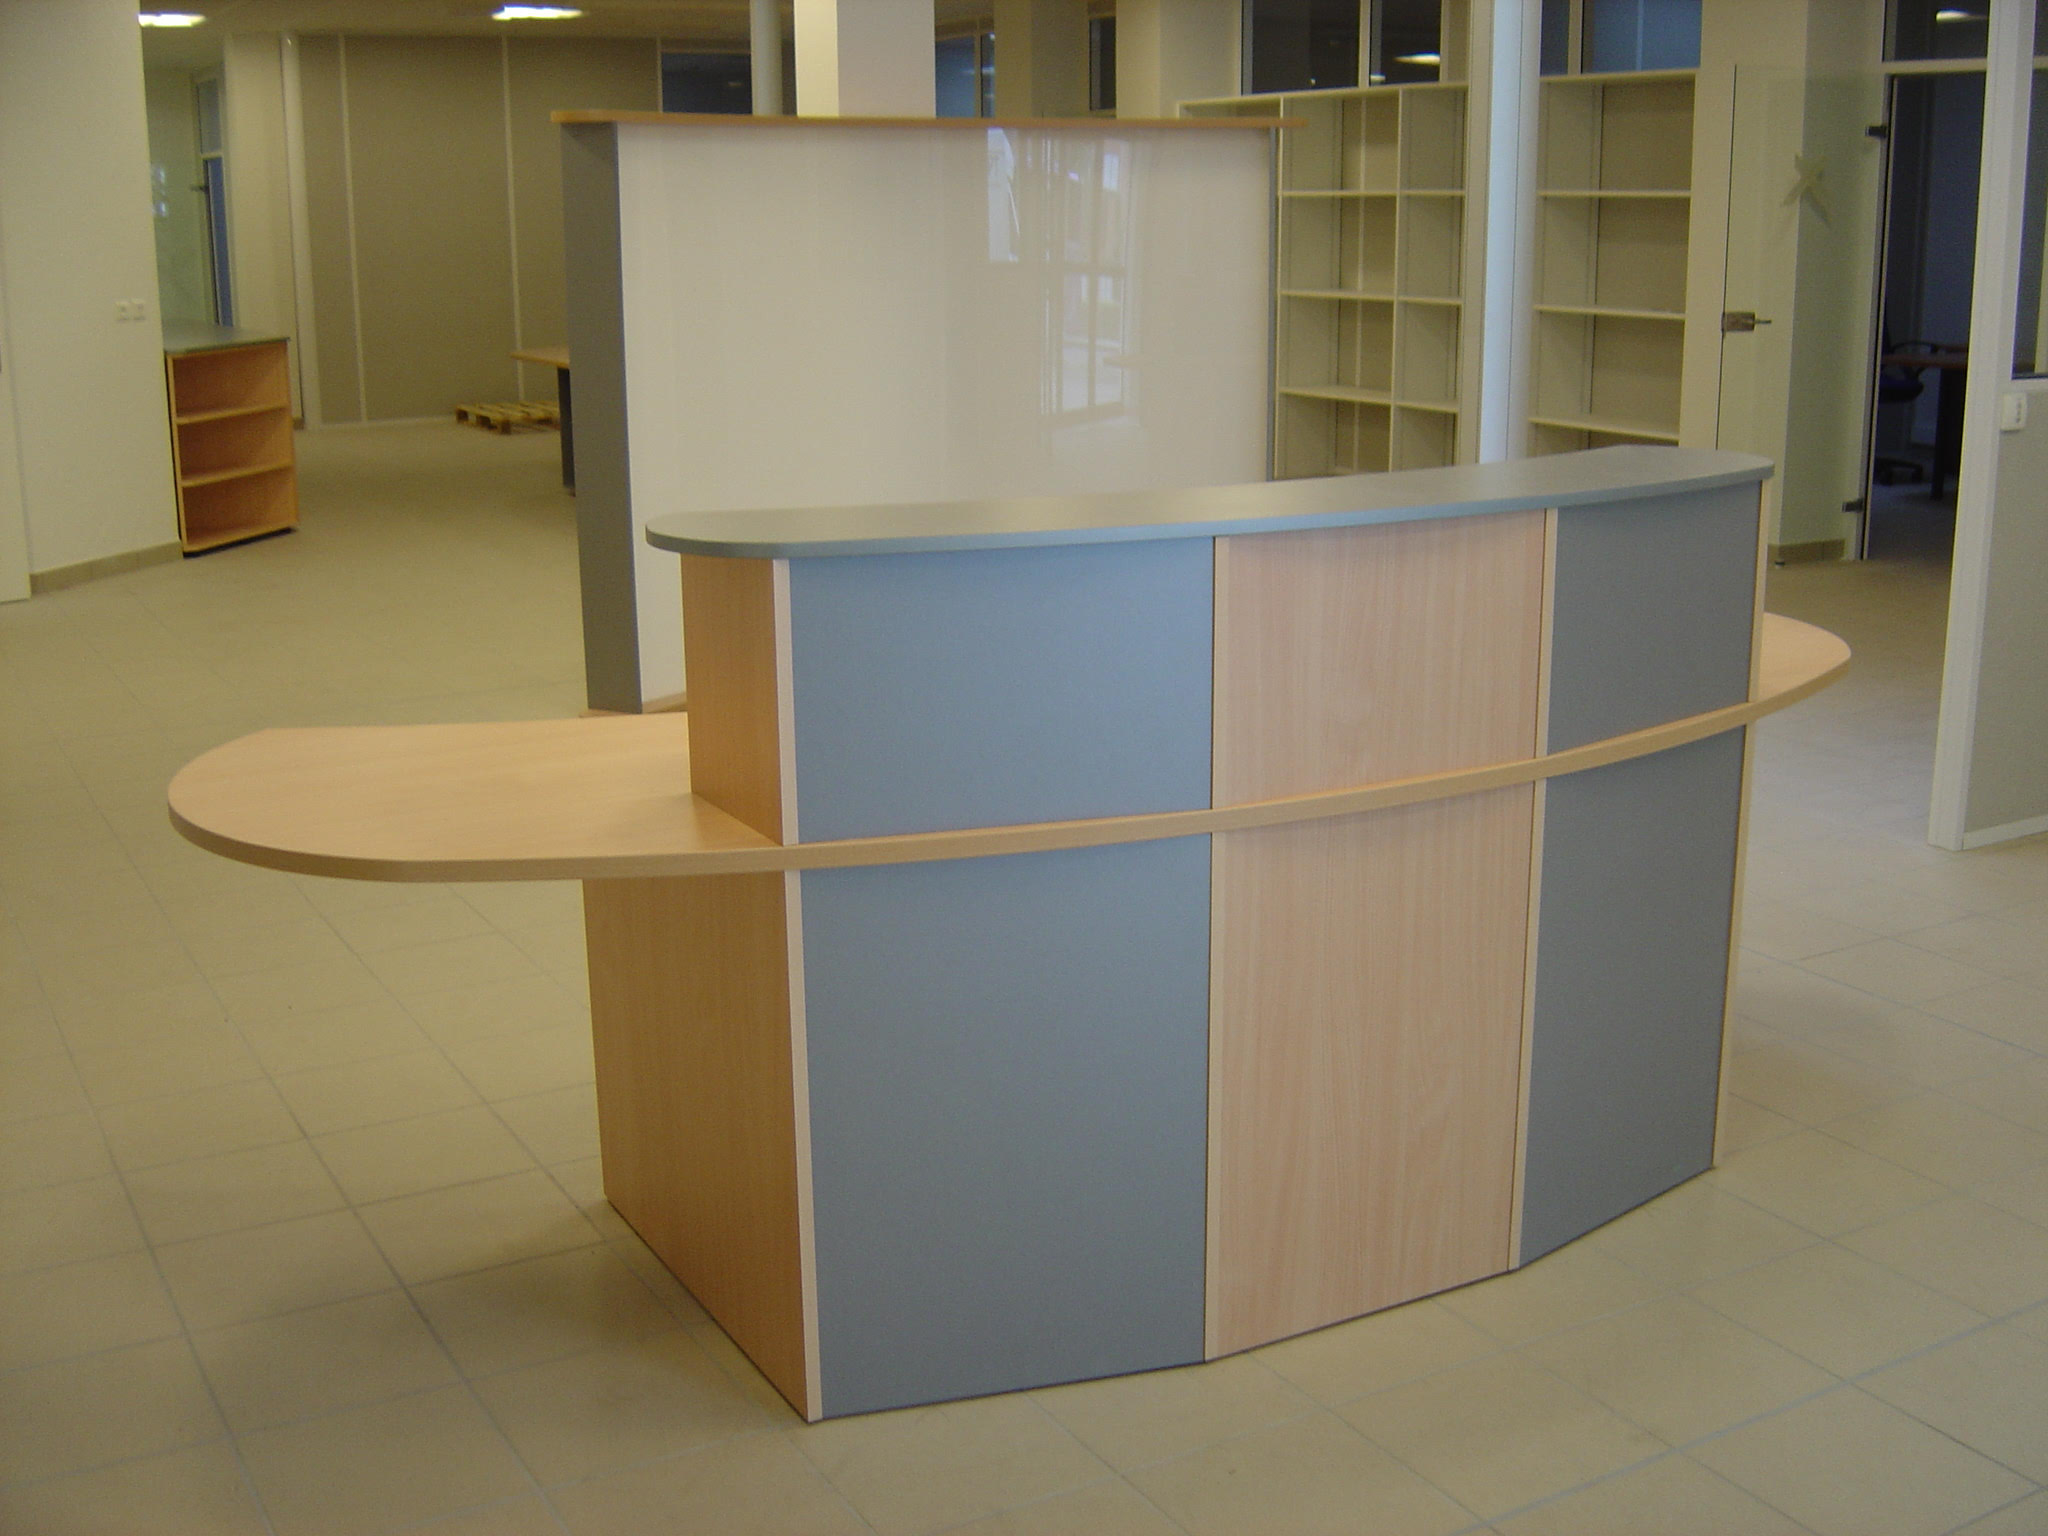 Magasin Meuble Chambery Mobilier D Interieur Aix Les Bains Annecy Chambery Geneve